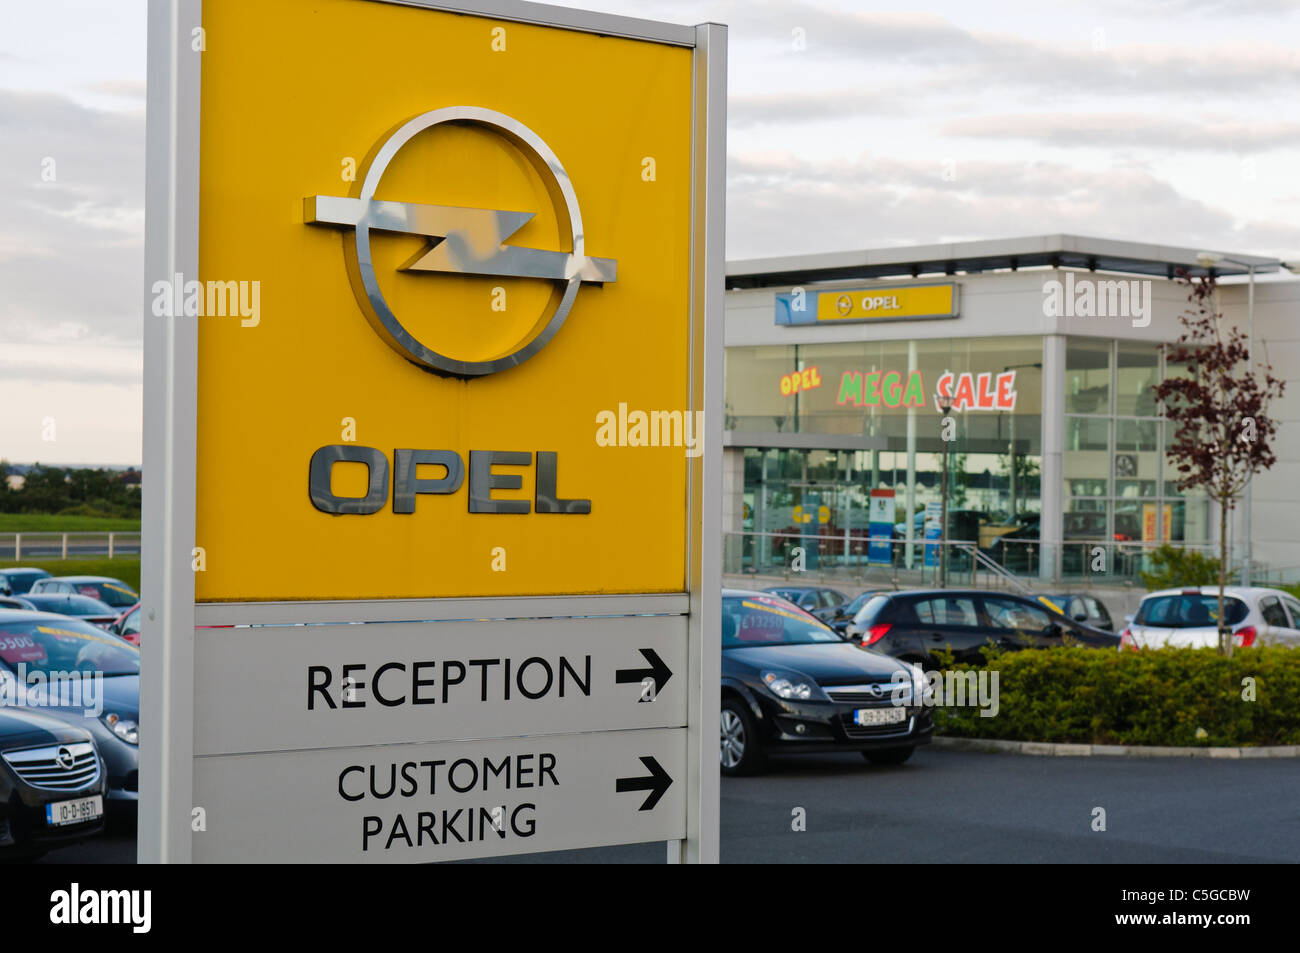 Garage Opel Clermont Ferrand Tyre Dealer Stock Photos Tyre Dealer Stock Images Alamy